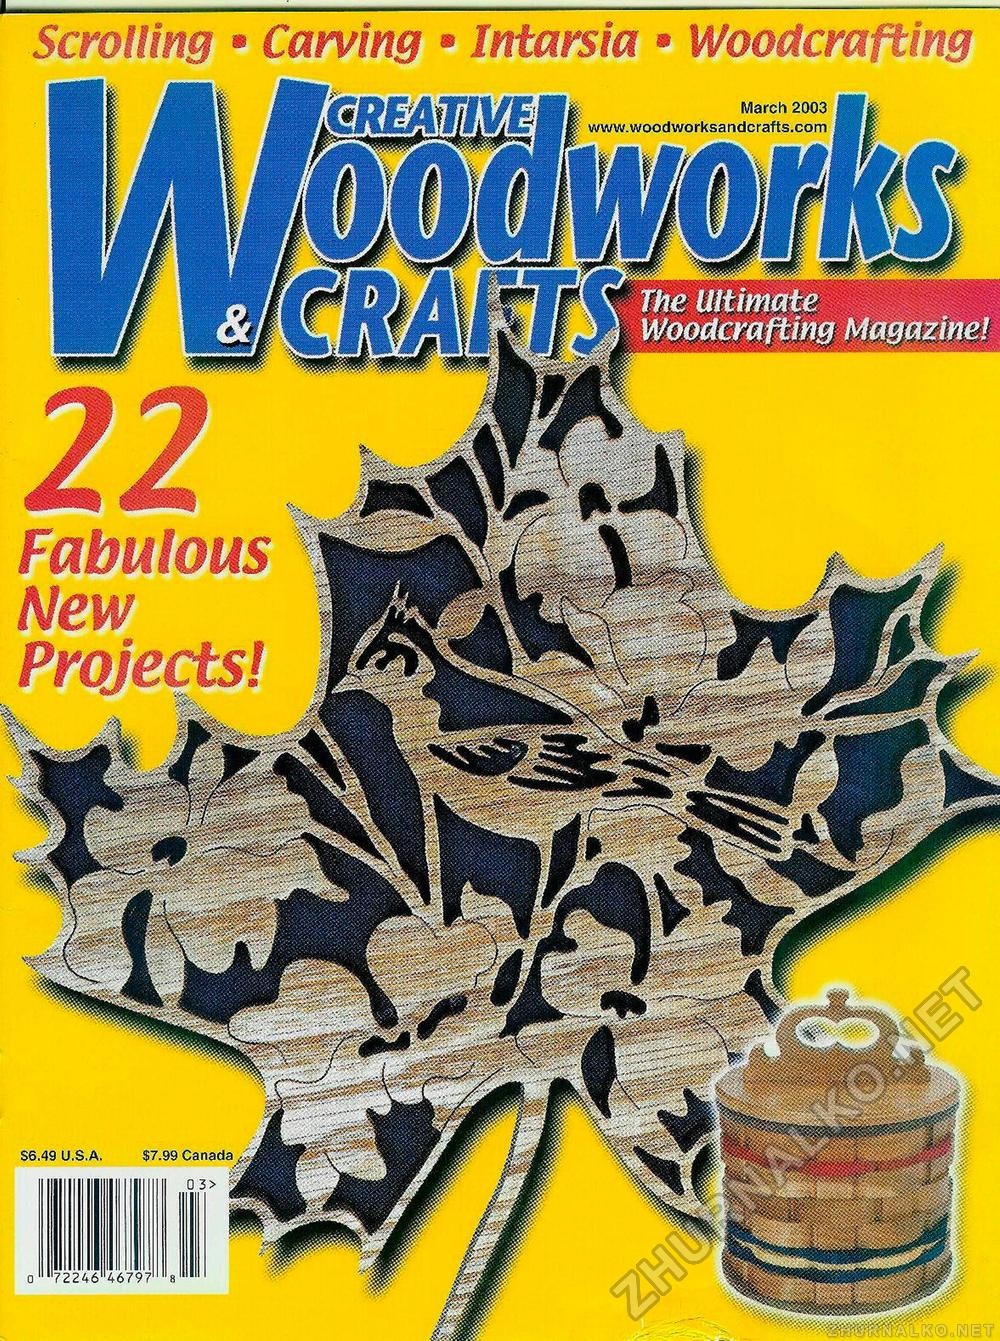 Creative Woodworks & crafts 2003-03, страница 1